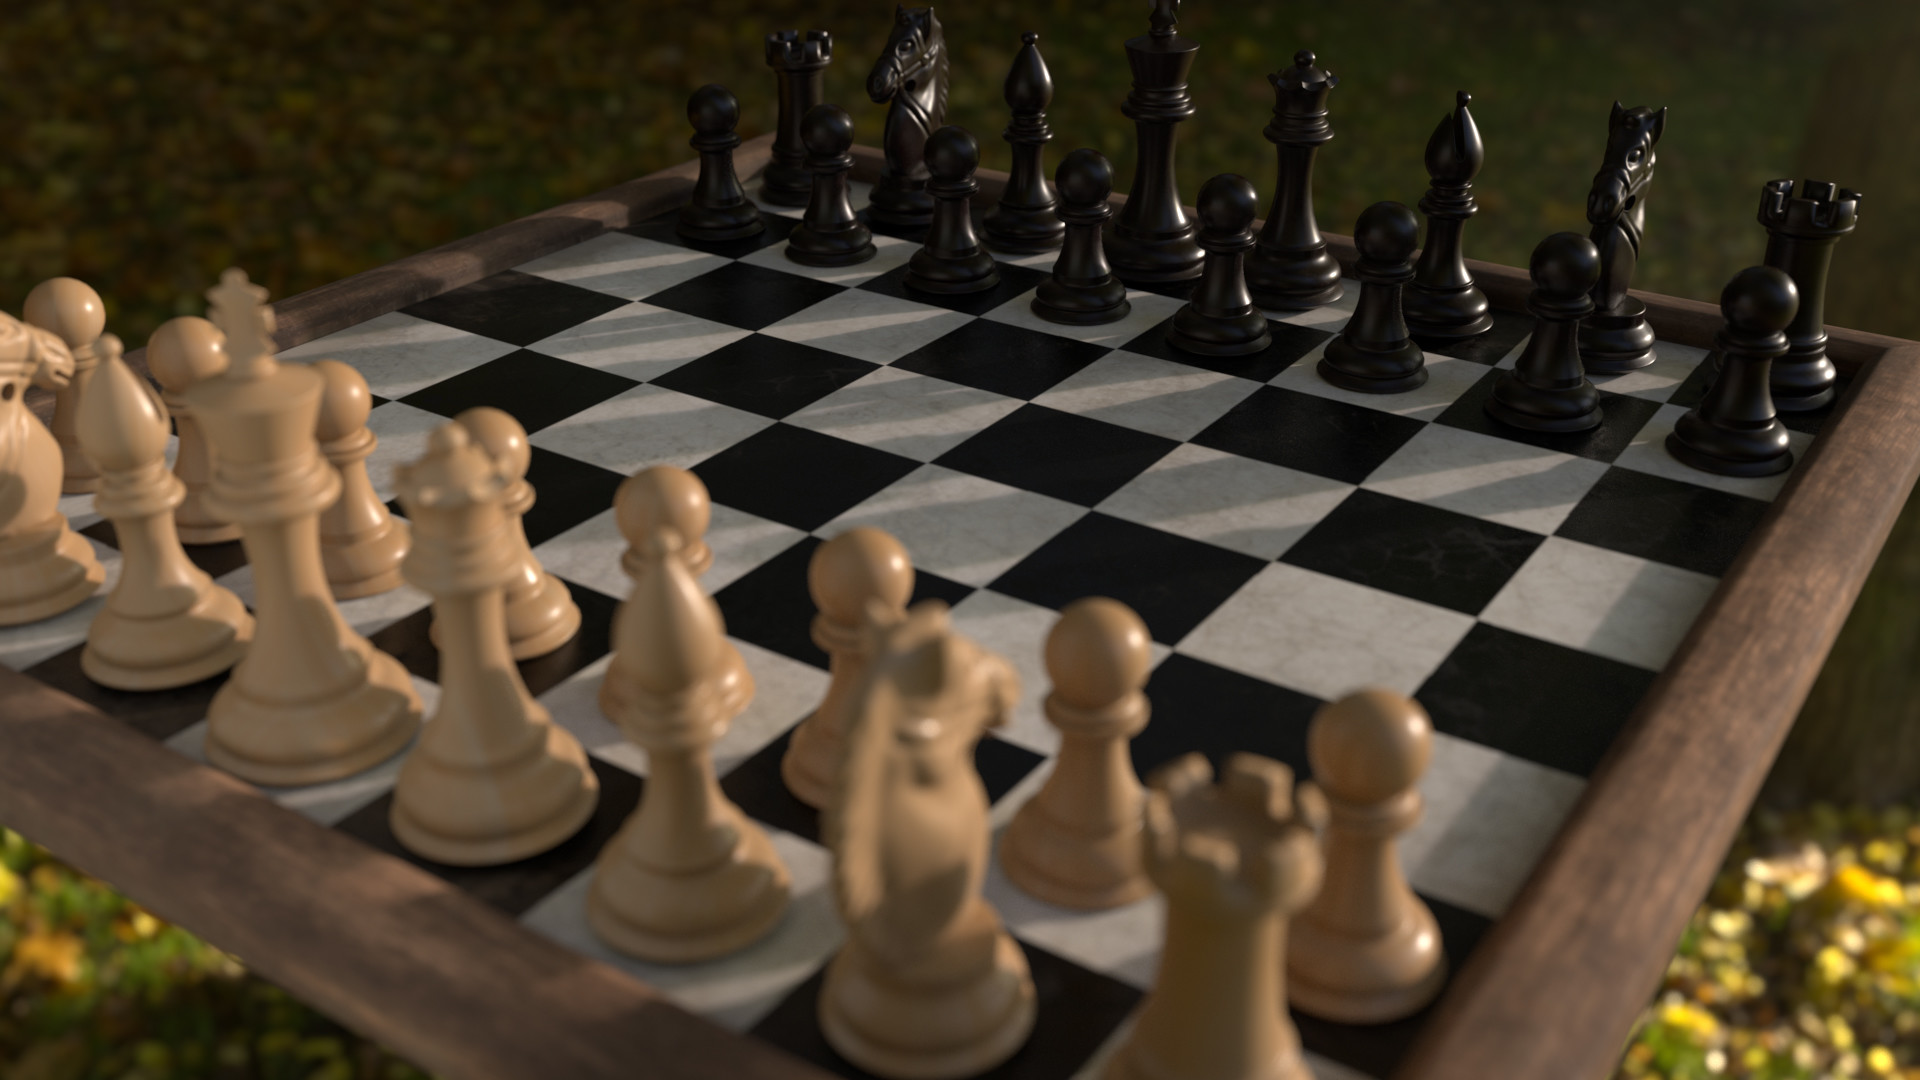 ArtStation - Chess Set Modeling and Texturing , Jessica Winters